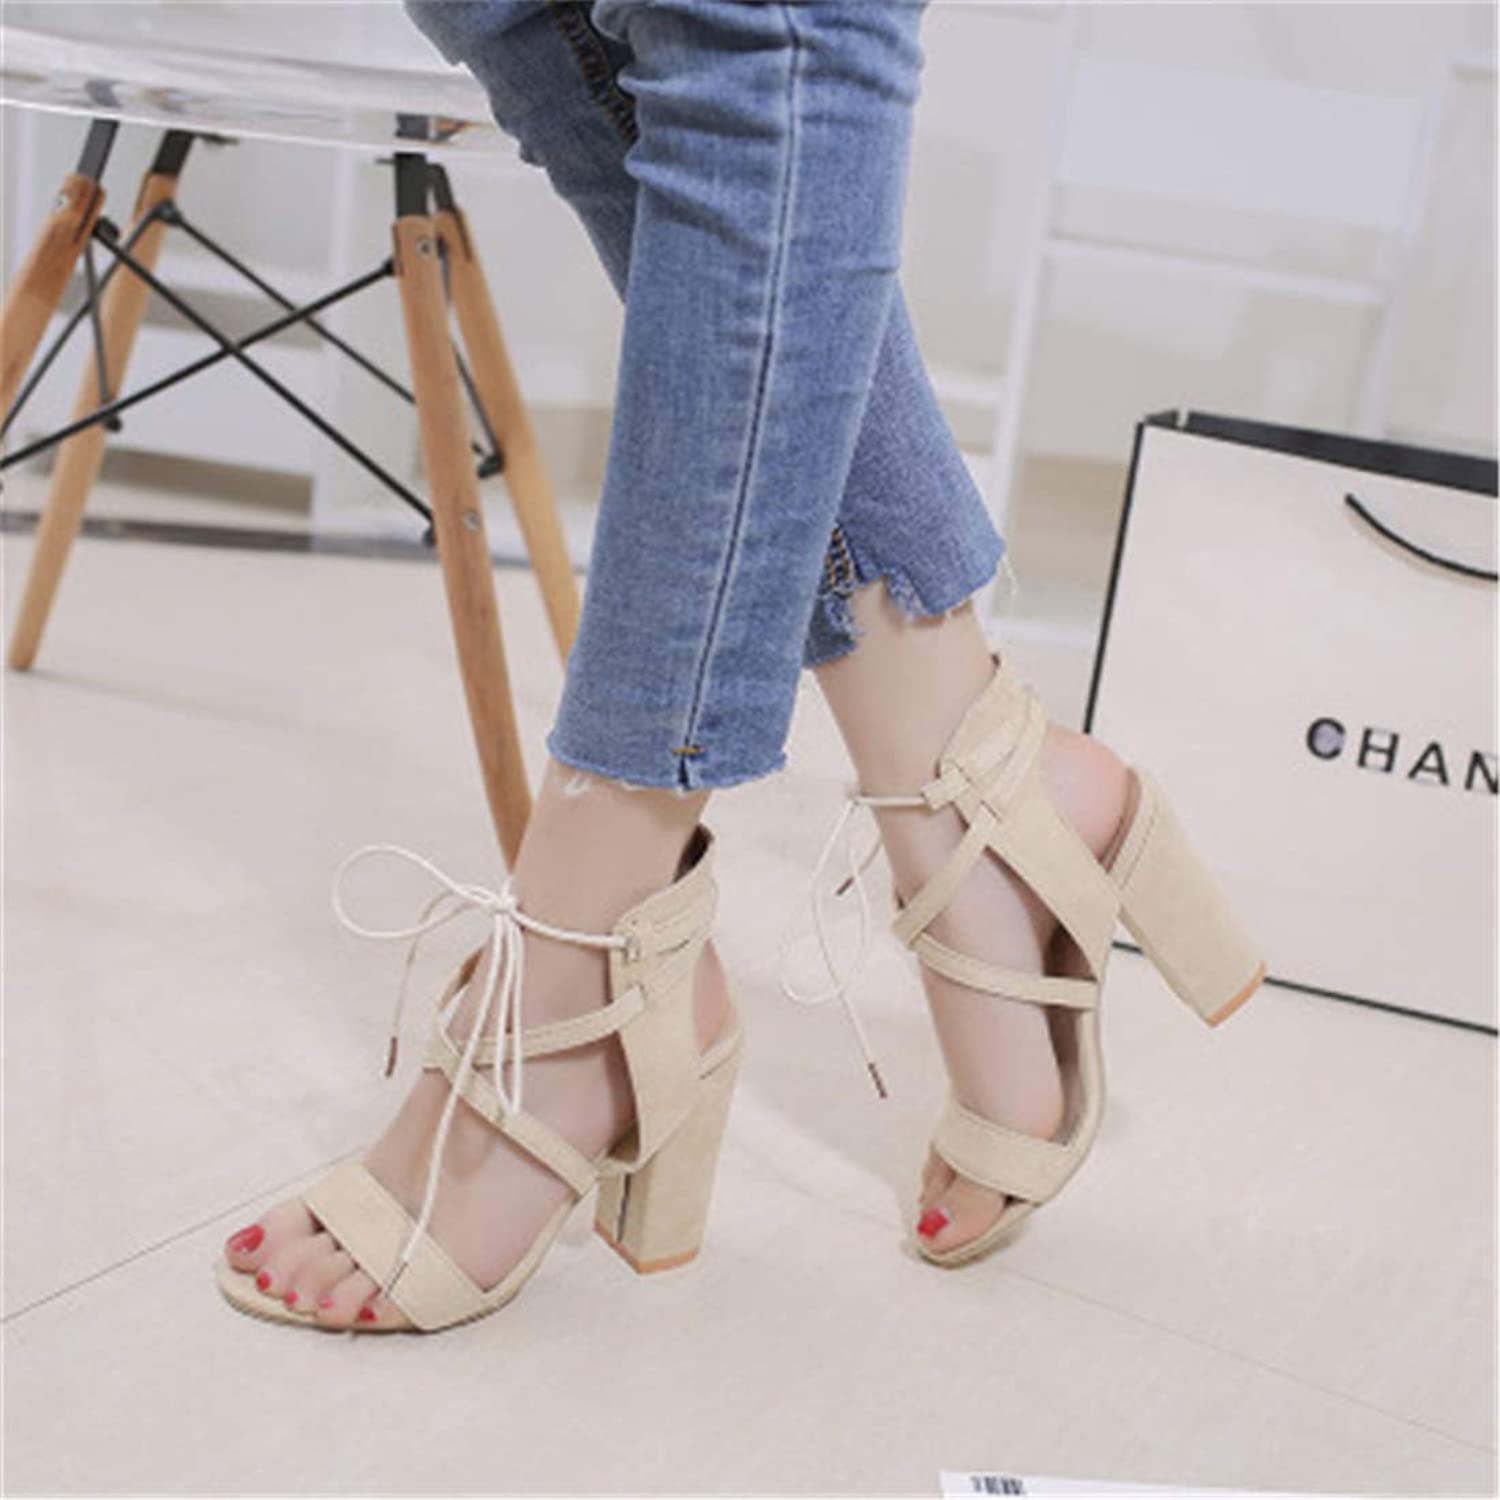 Women's Ankle Strap Adjustable Buckle Block Chunky Perspex High Heel Transparent Dress Sandals